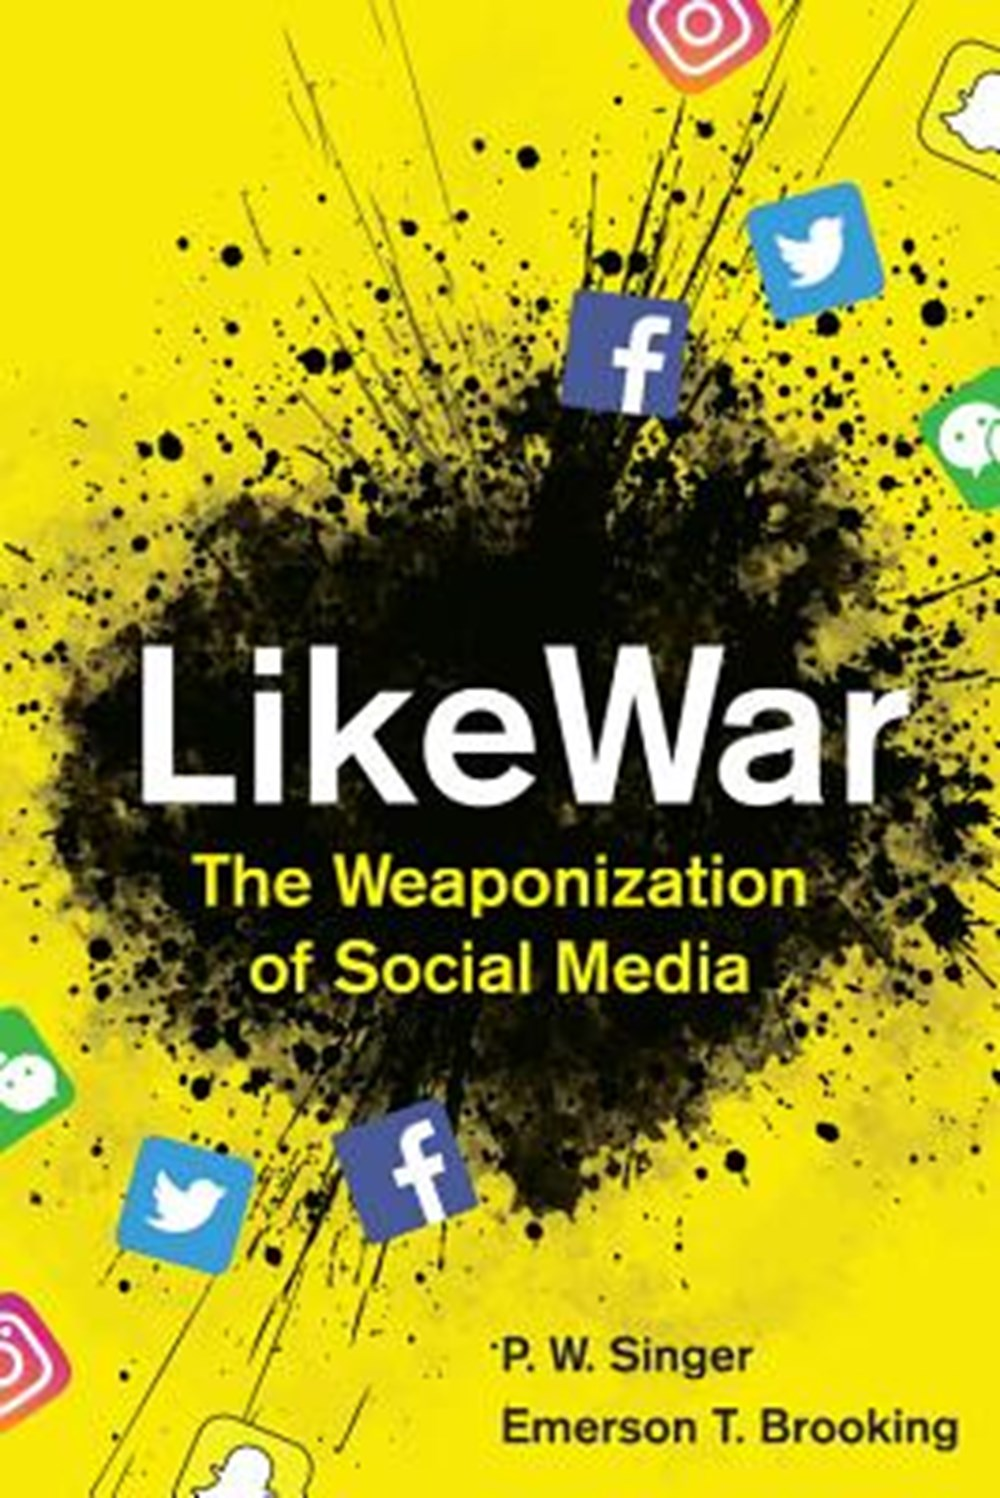 LikeWar The Weaponization of Social Media